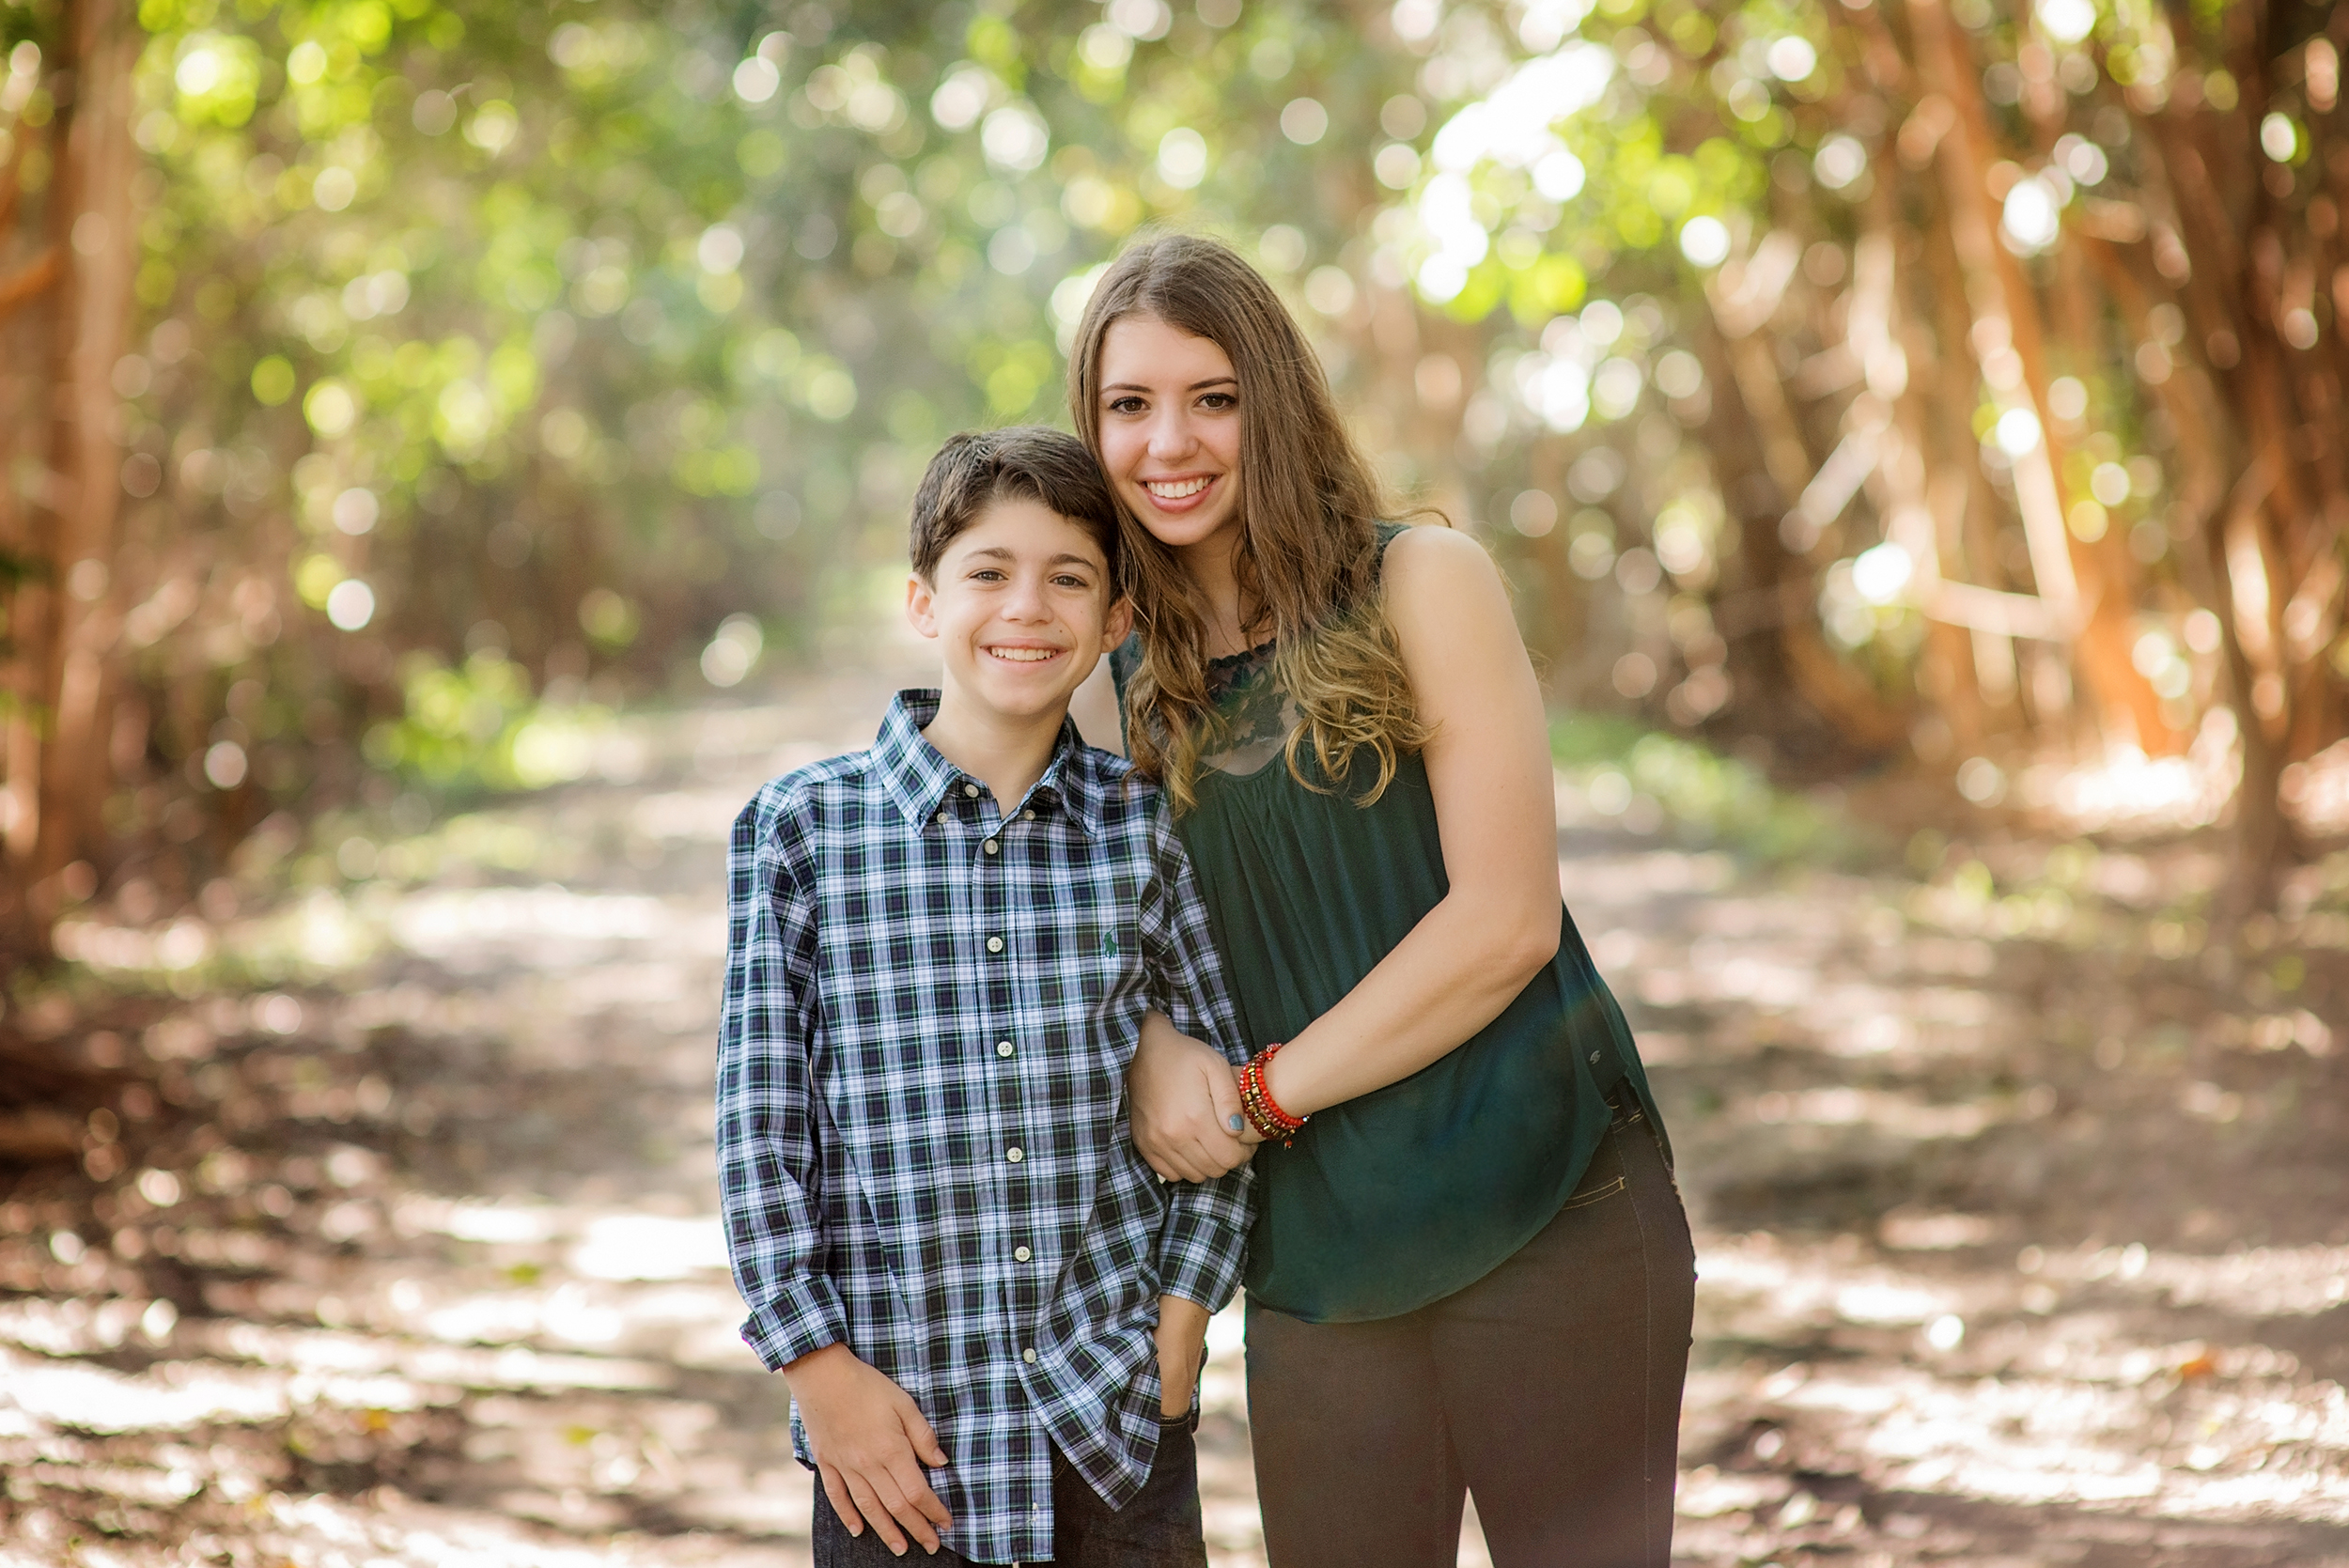 child-photography-south-florida-alison-frank-photography_20.jpg